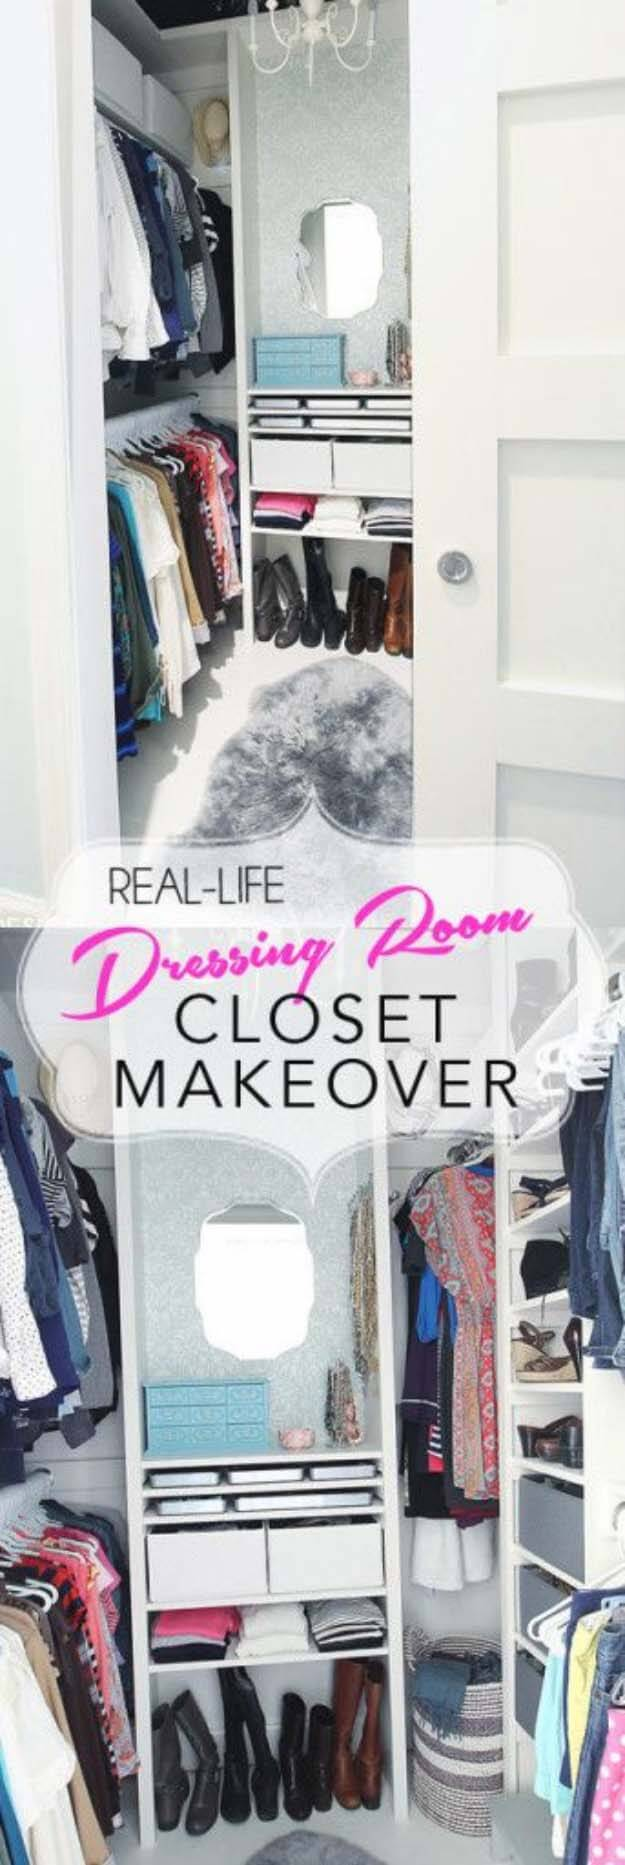 From Cluttered Mess To Mini-Dressing Room